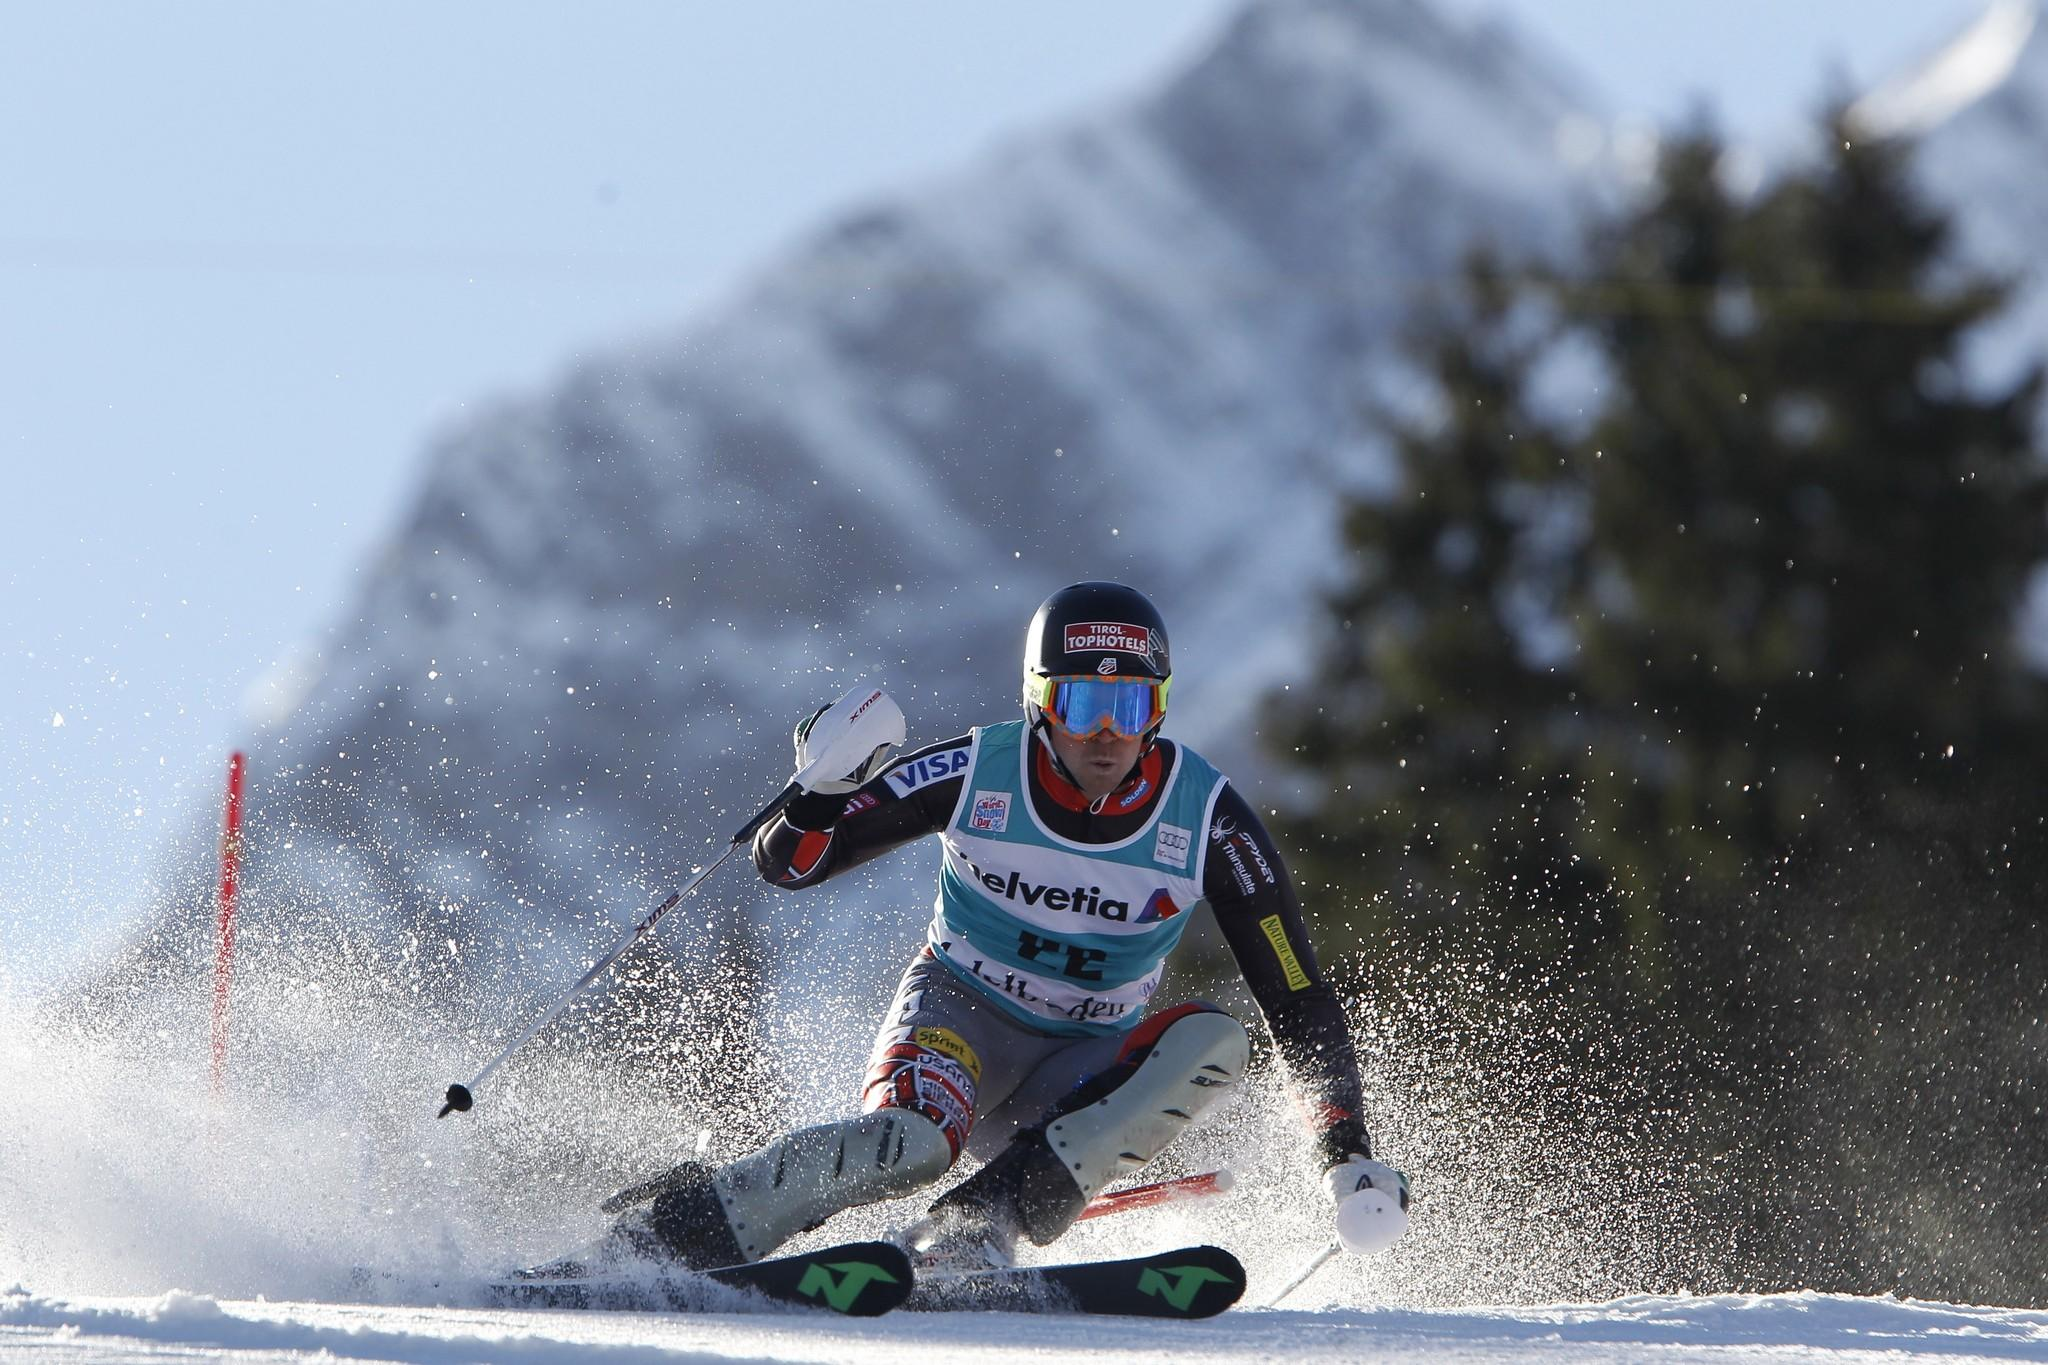 David Chodounsky competes during the Audi FIS Alpine Ski World Cup slalom in Adelboden, Switzerland. (Alexis Boichard/Getty Photo)